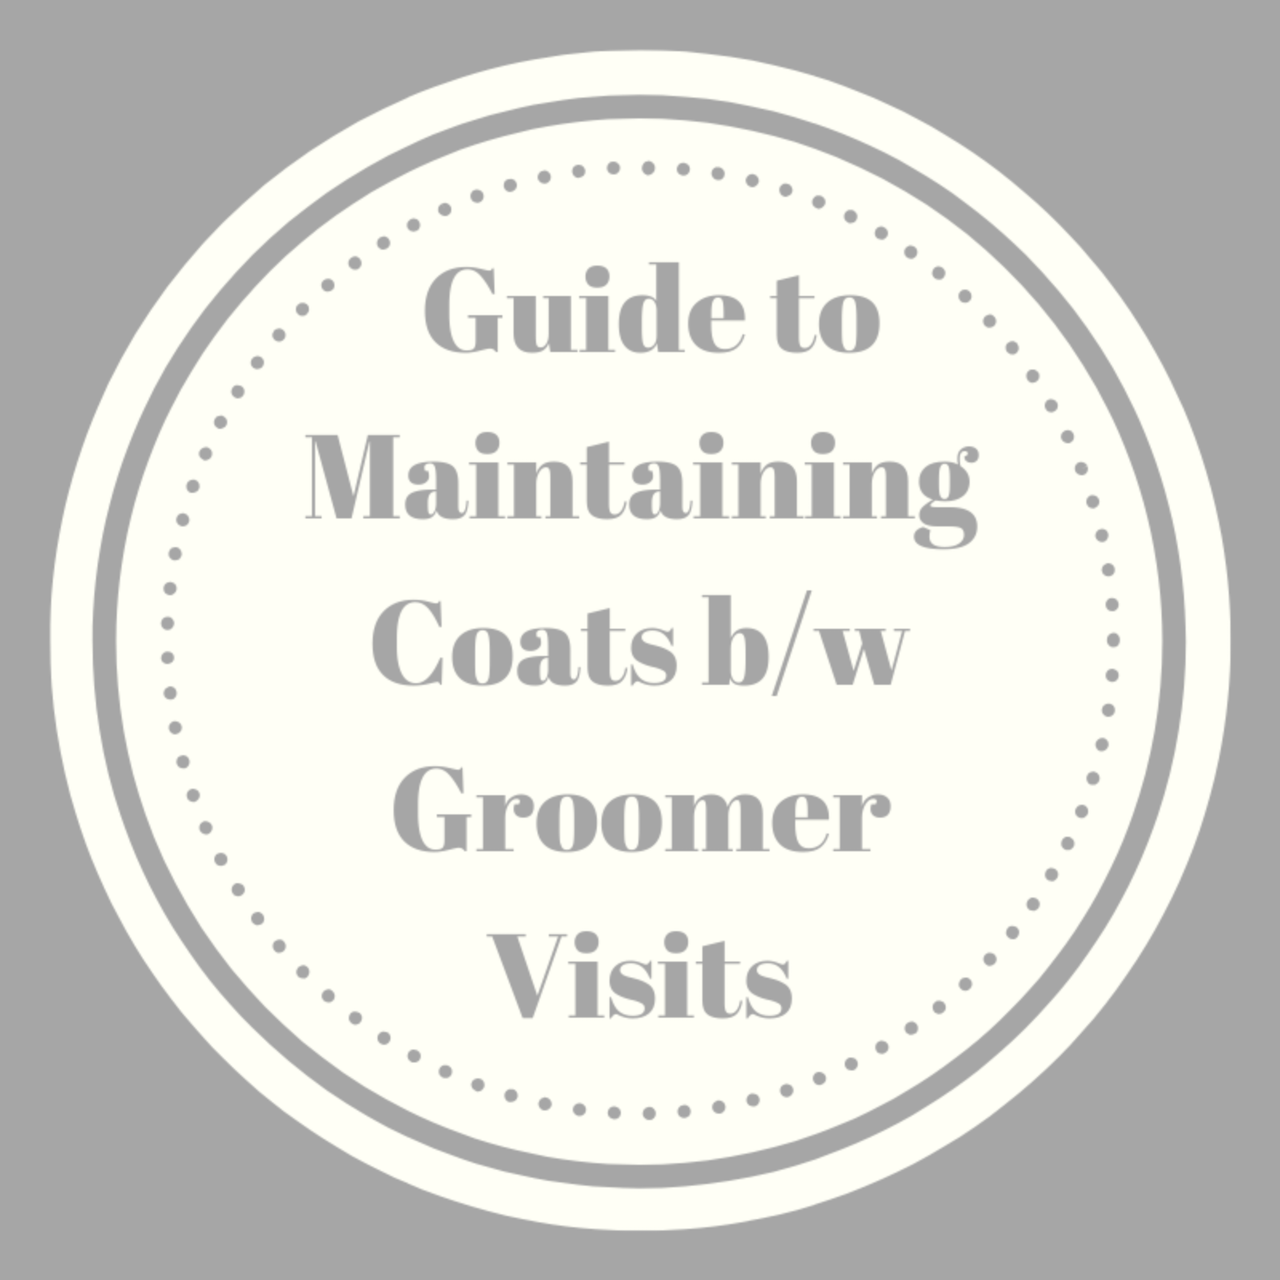 Guide to Maintaining Coats between Groomer Visits